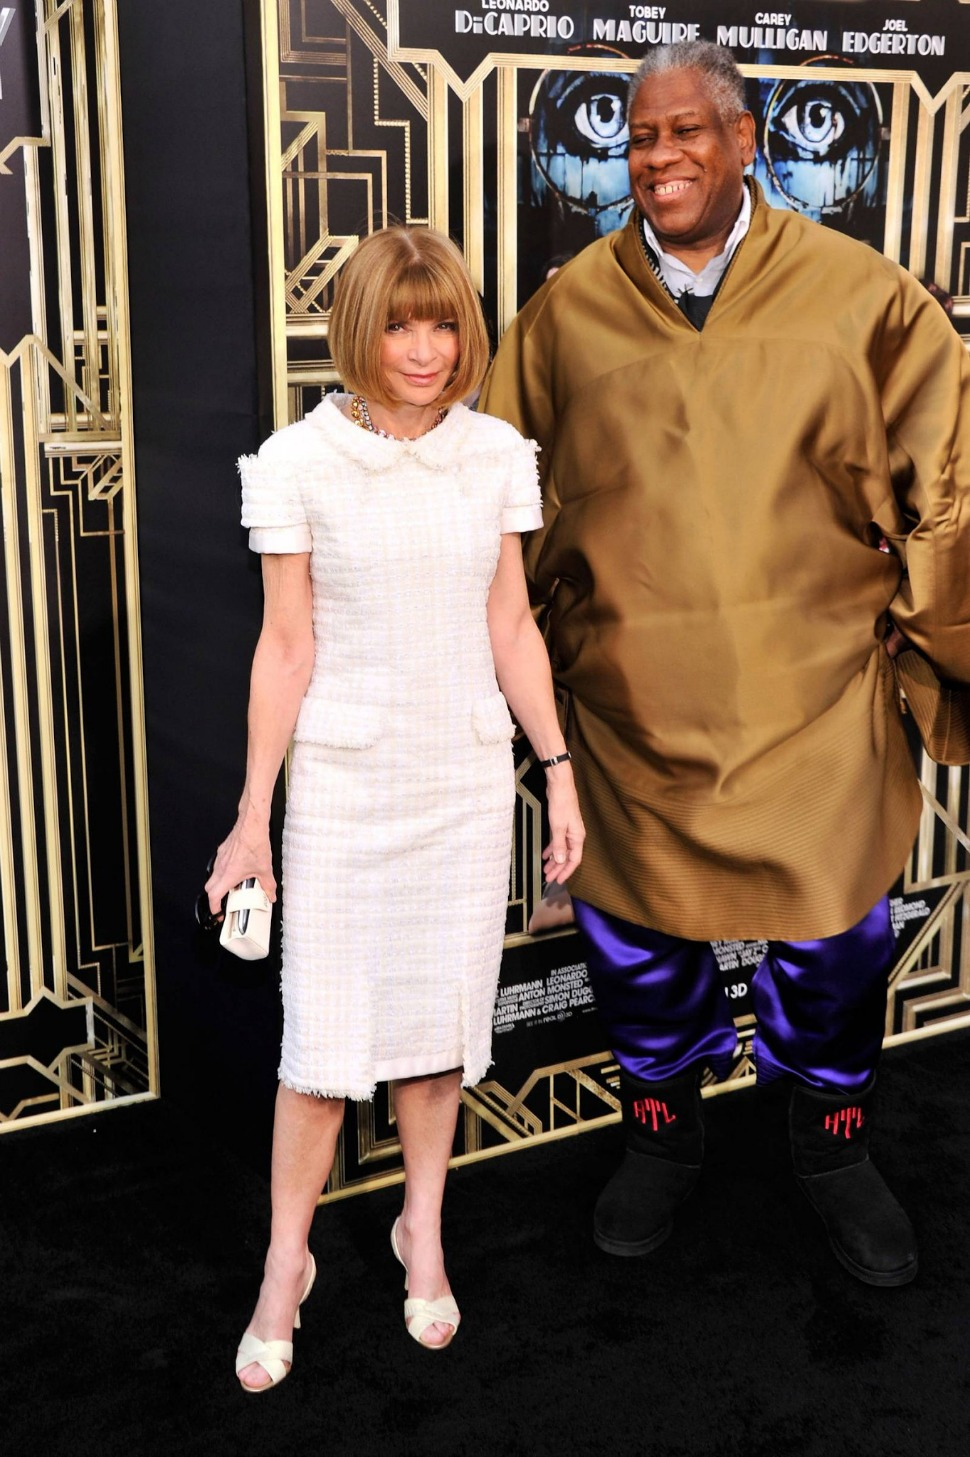 Anna Wintour with Andre Leon Talley in Grand Gatsby Premiere 2013.